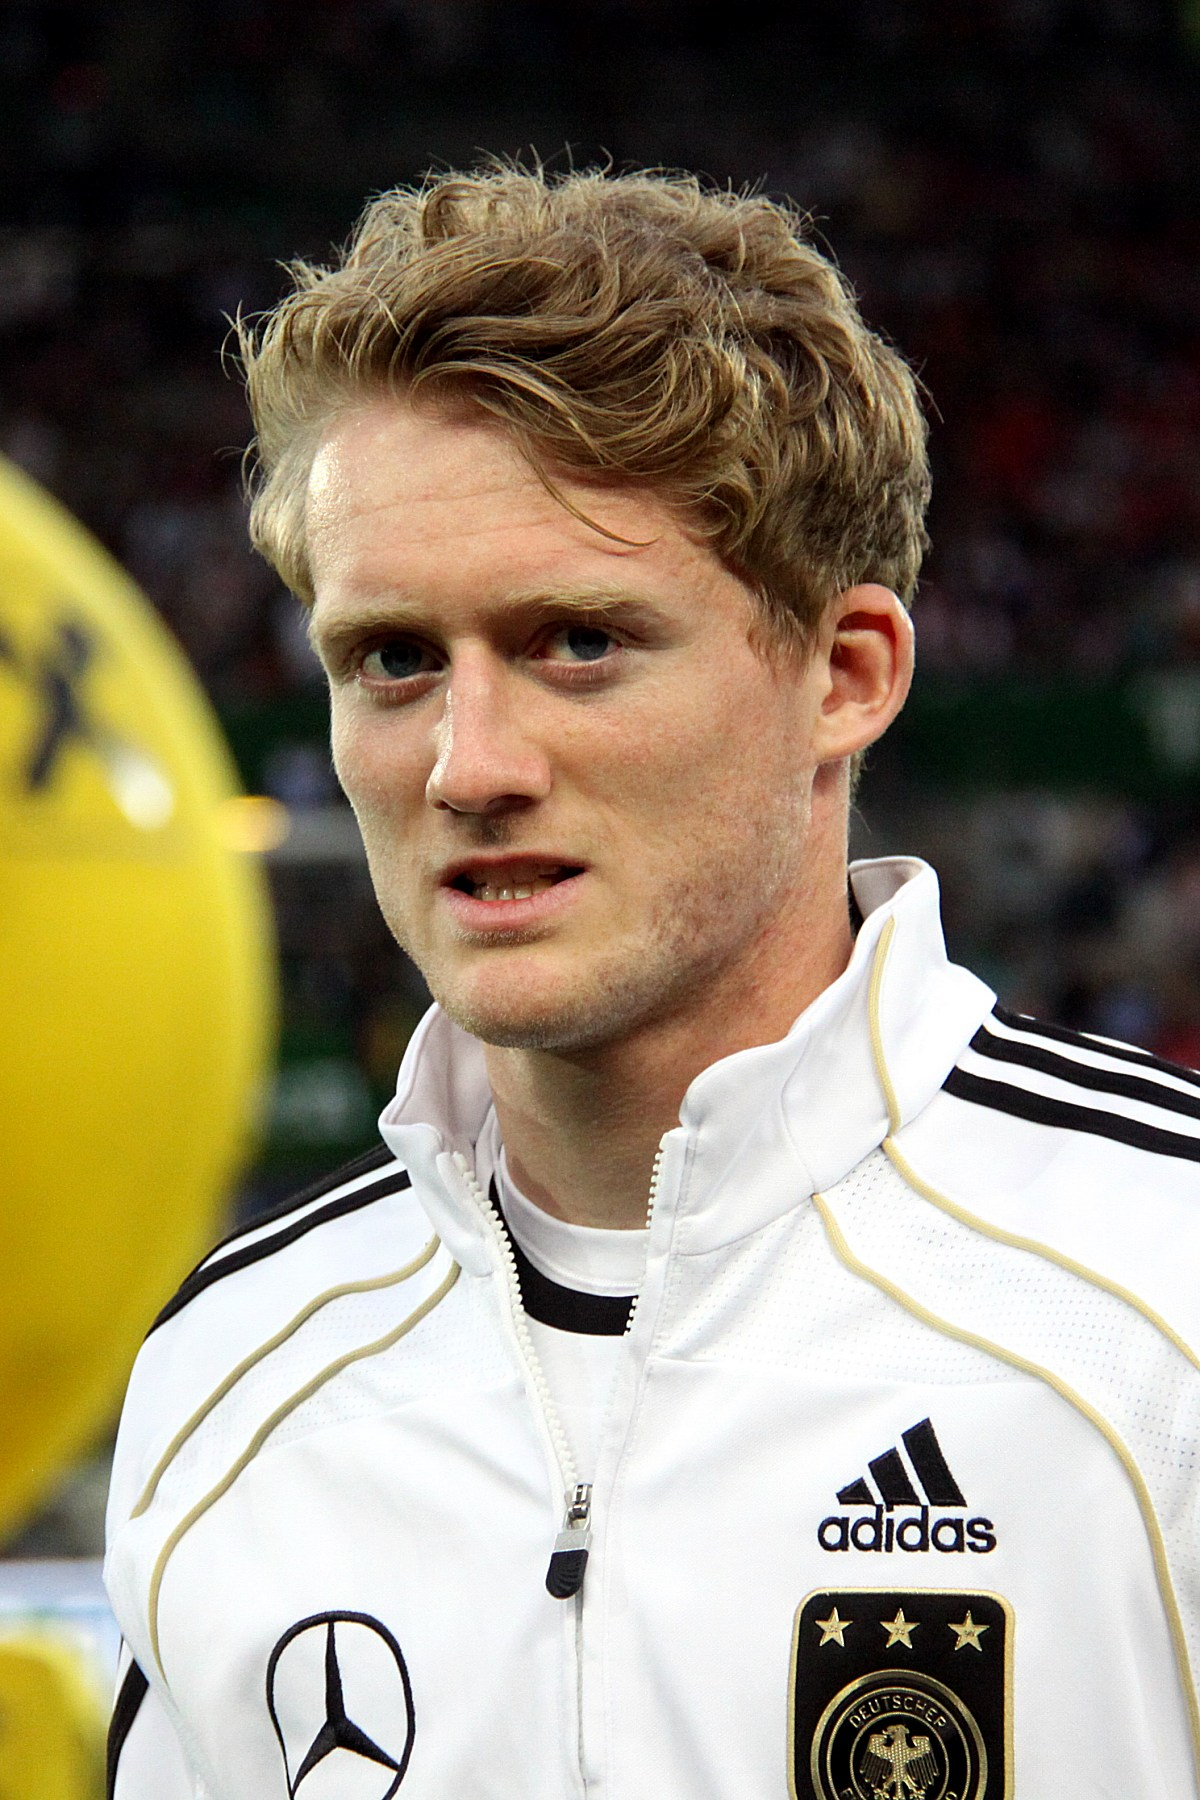 The 29-year old son of father Joachim Schürrle and mother Luise Schürrle André Schürrle in 2020 photo. André Schürrle earned a  million dollar salary - leaving the net worth at 30 million in 2020